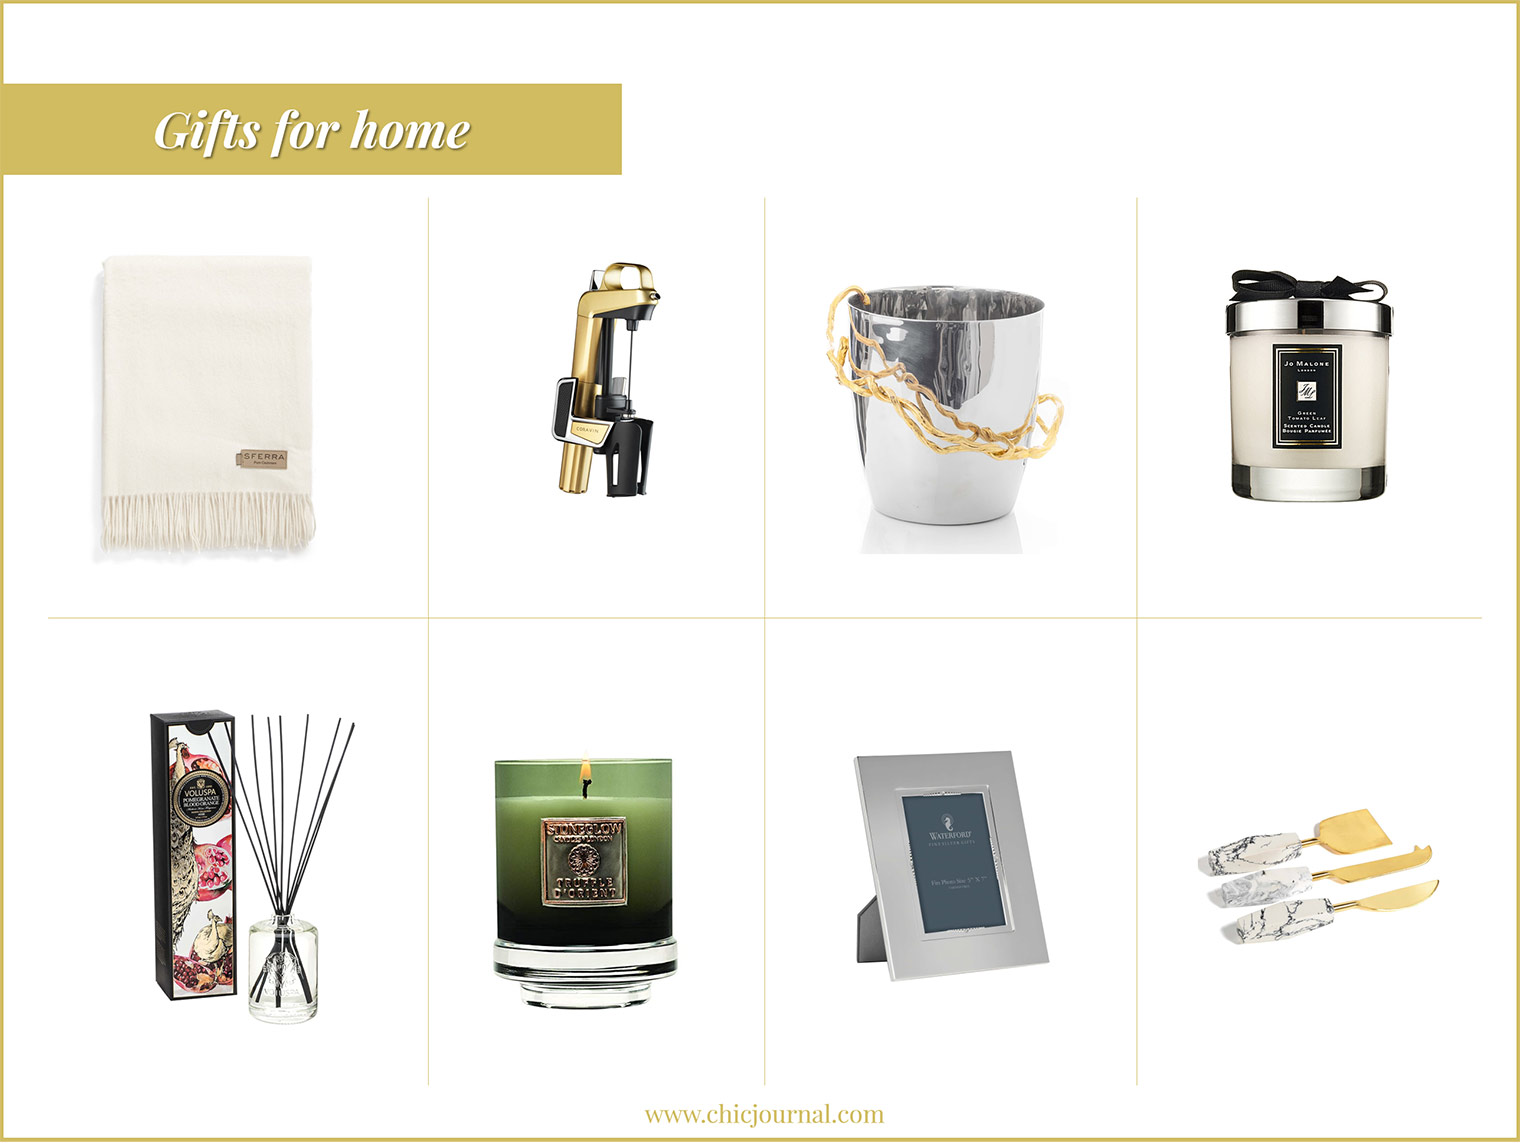 Best Christmas gifts for home that everyone wants